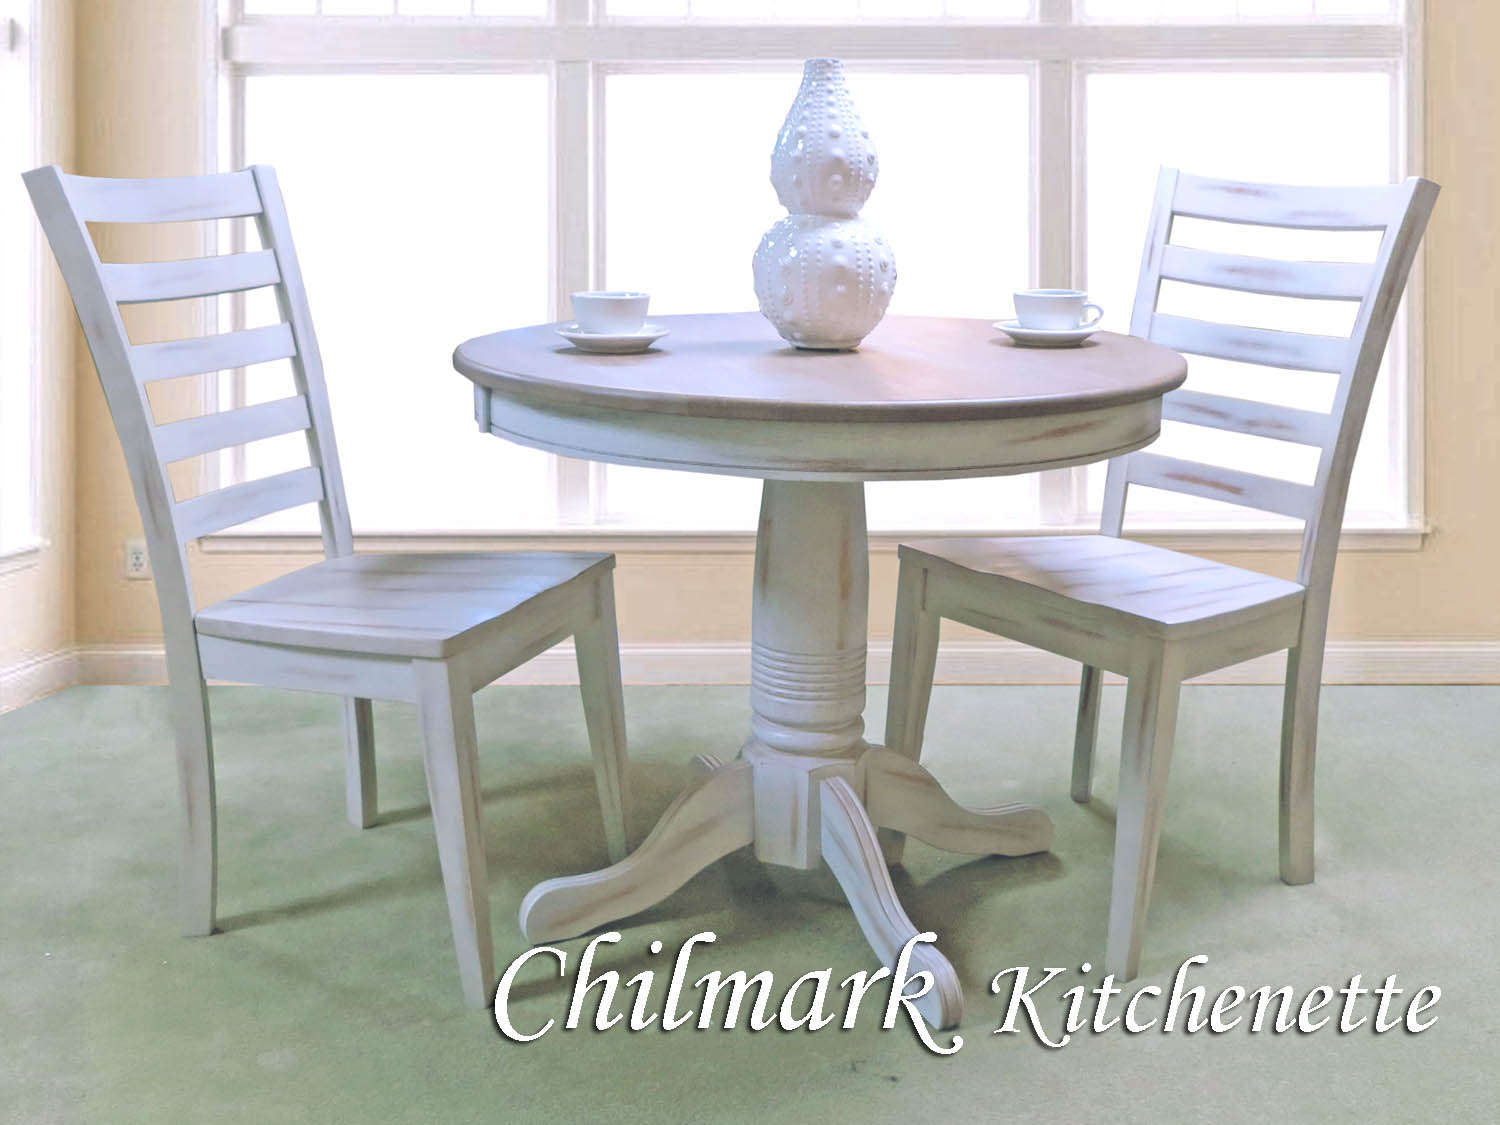 Barbo's Furniture, Chilmark, Kitchenette, Dining, Dining Room, Kitchen, Cape Cod, Coastal, Seaside, Cottage, Two-tone, White, Natural, Veneer, Casual, Table, Side, Chair